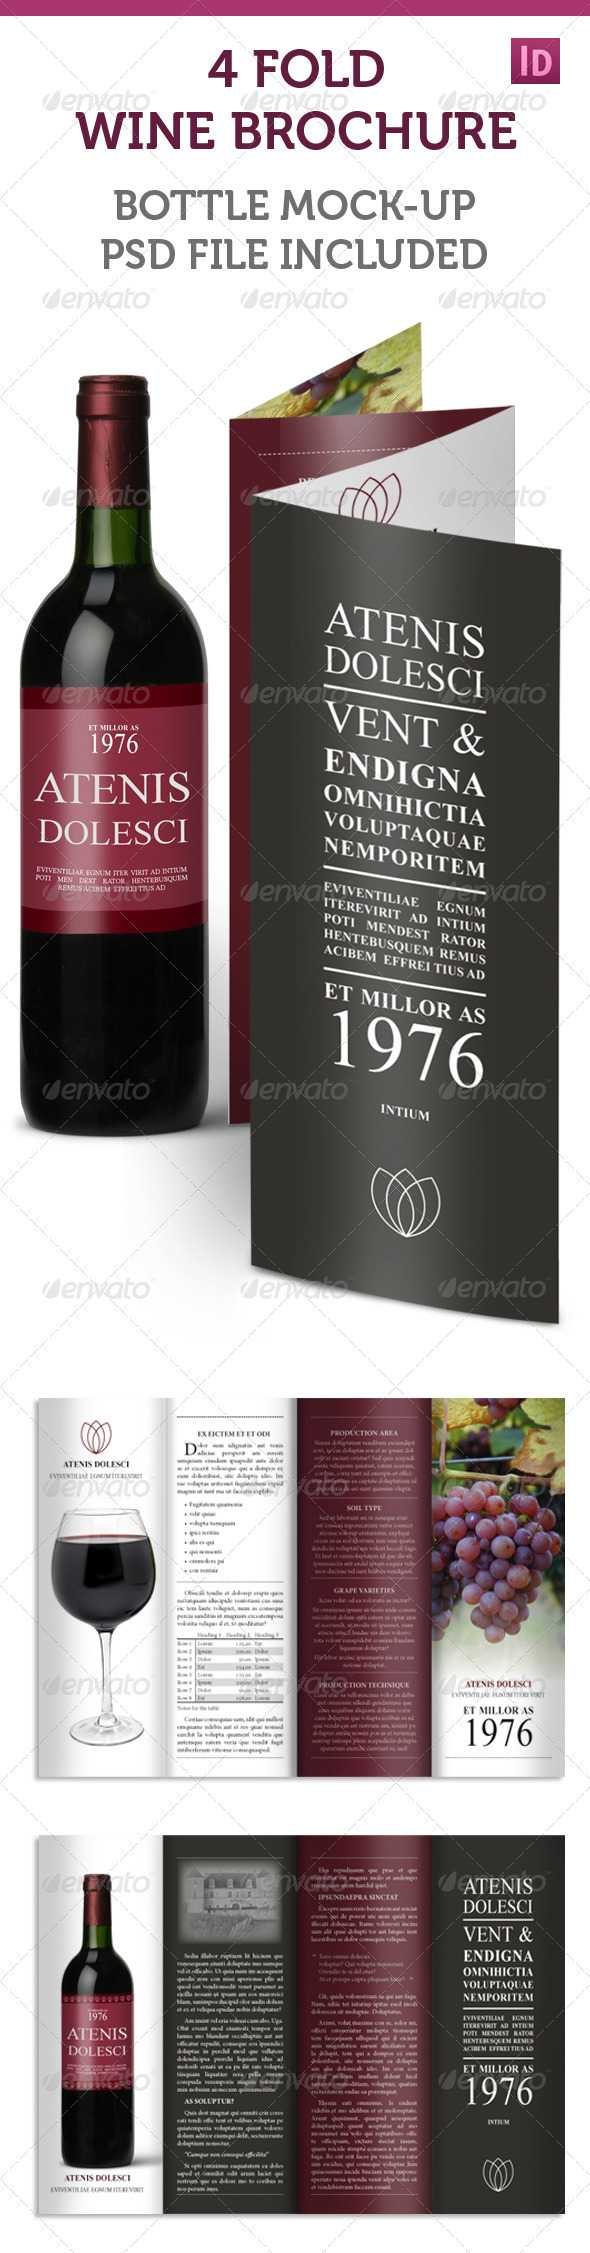 Wine Brochure Templates From Graphicriver Within Wine Brochure Template